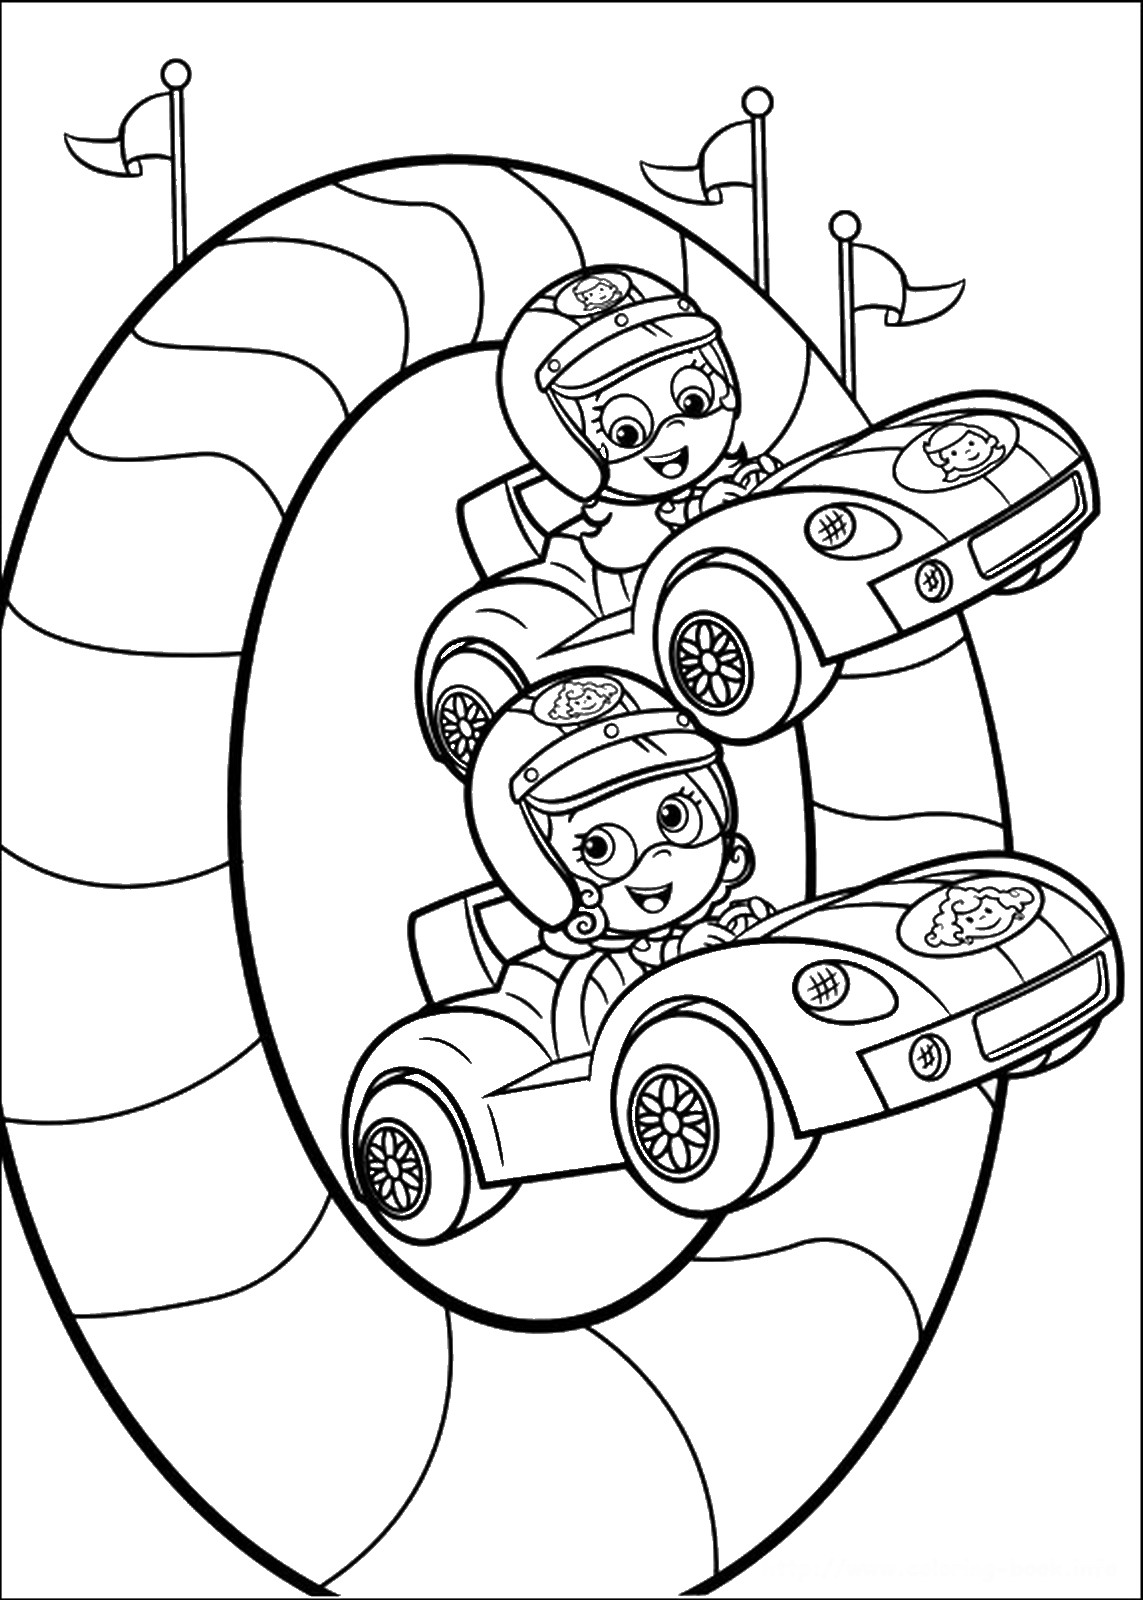 Bubble Guppies Coloring Pages Best Coloring Pages For Kids Where To Print Color Pages